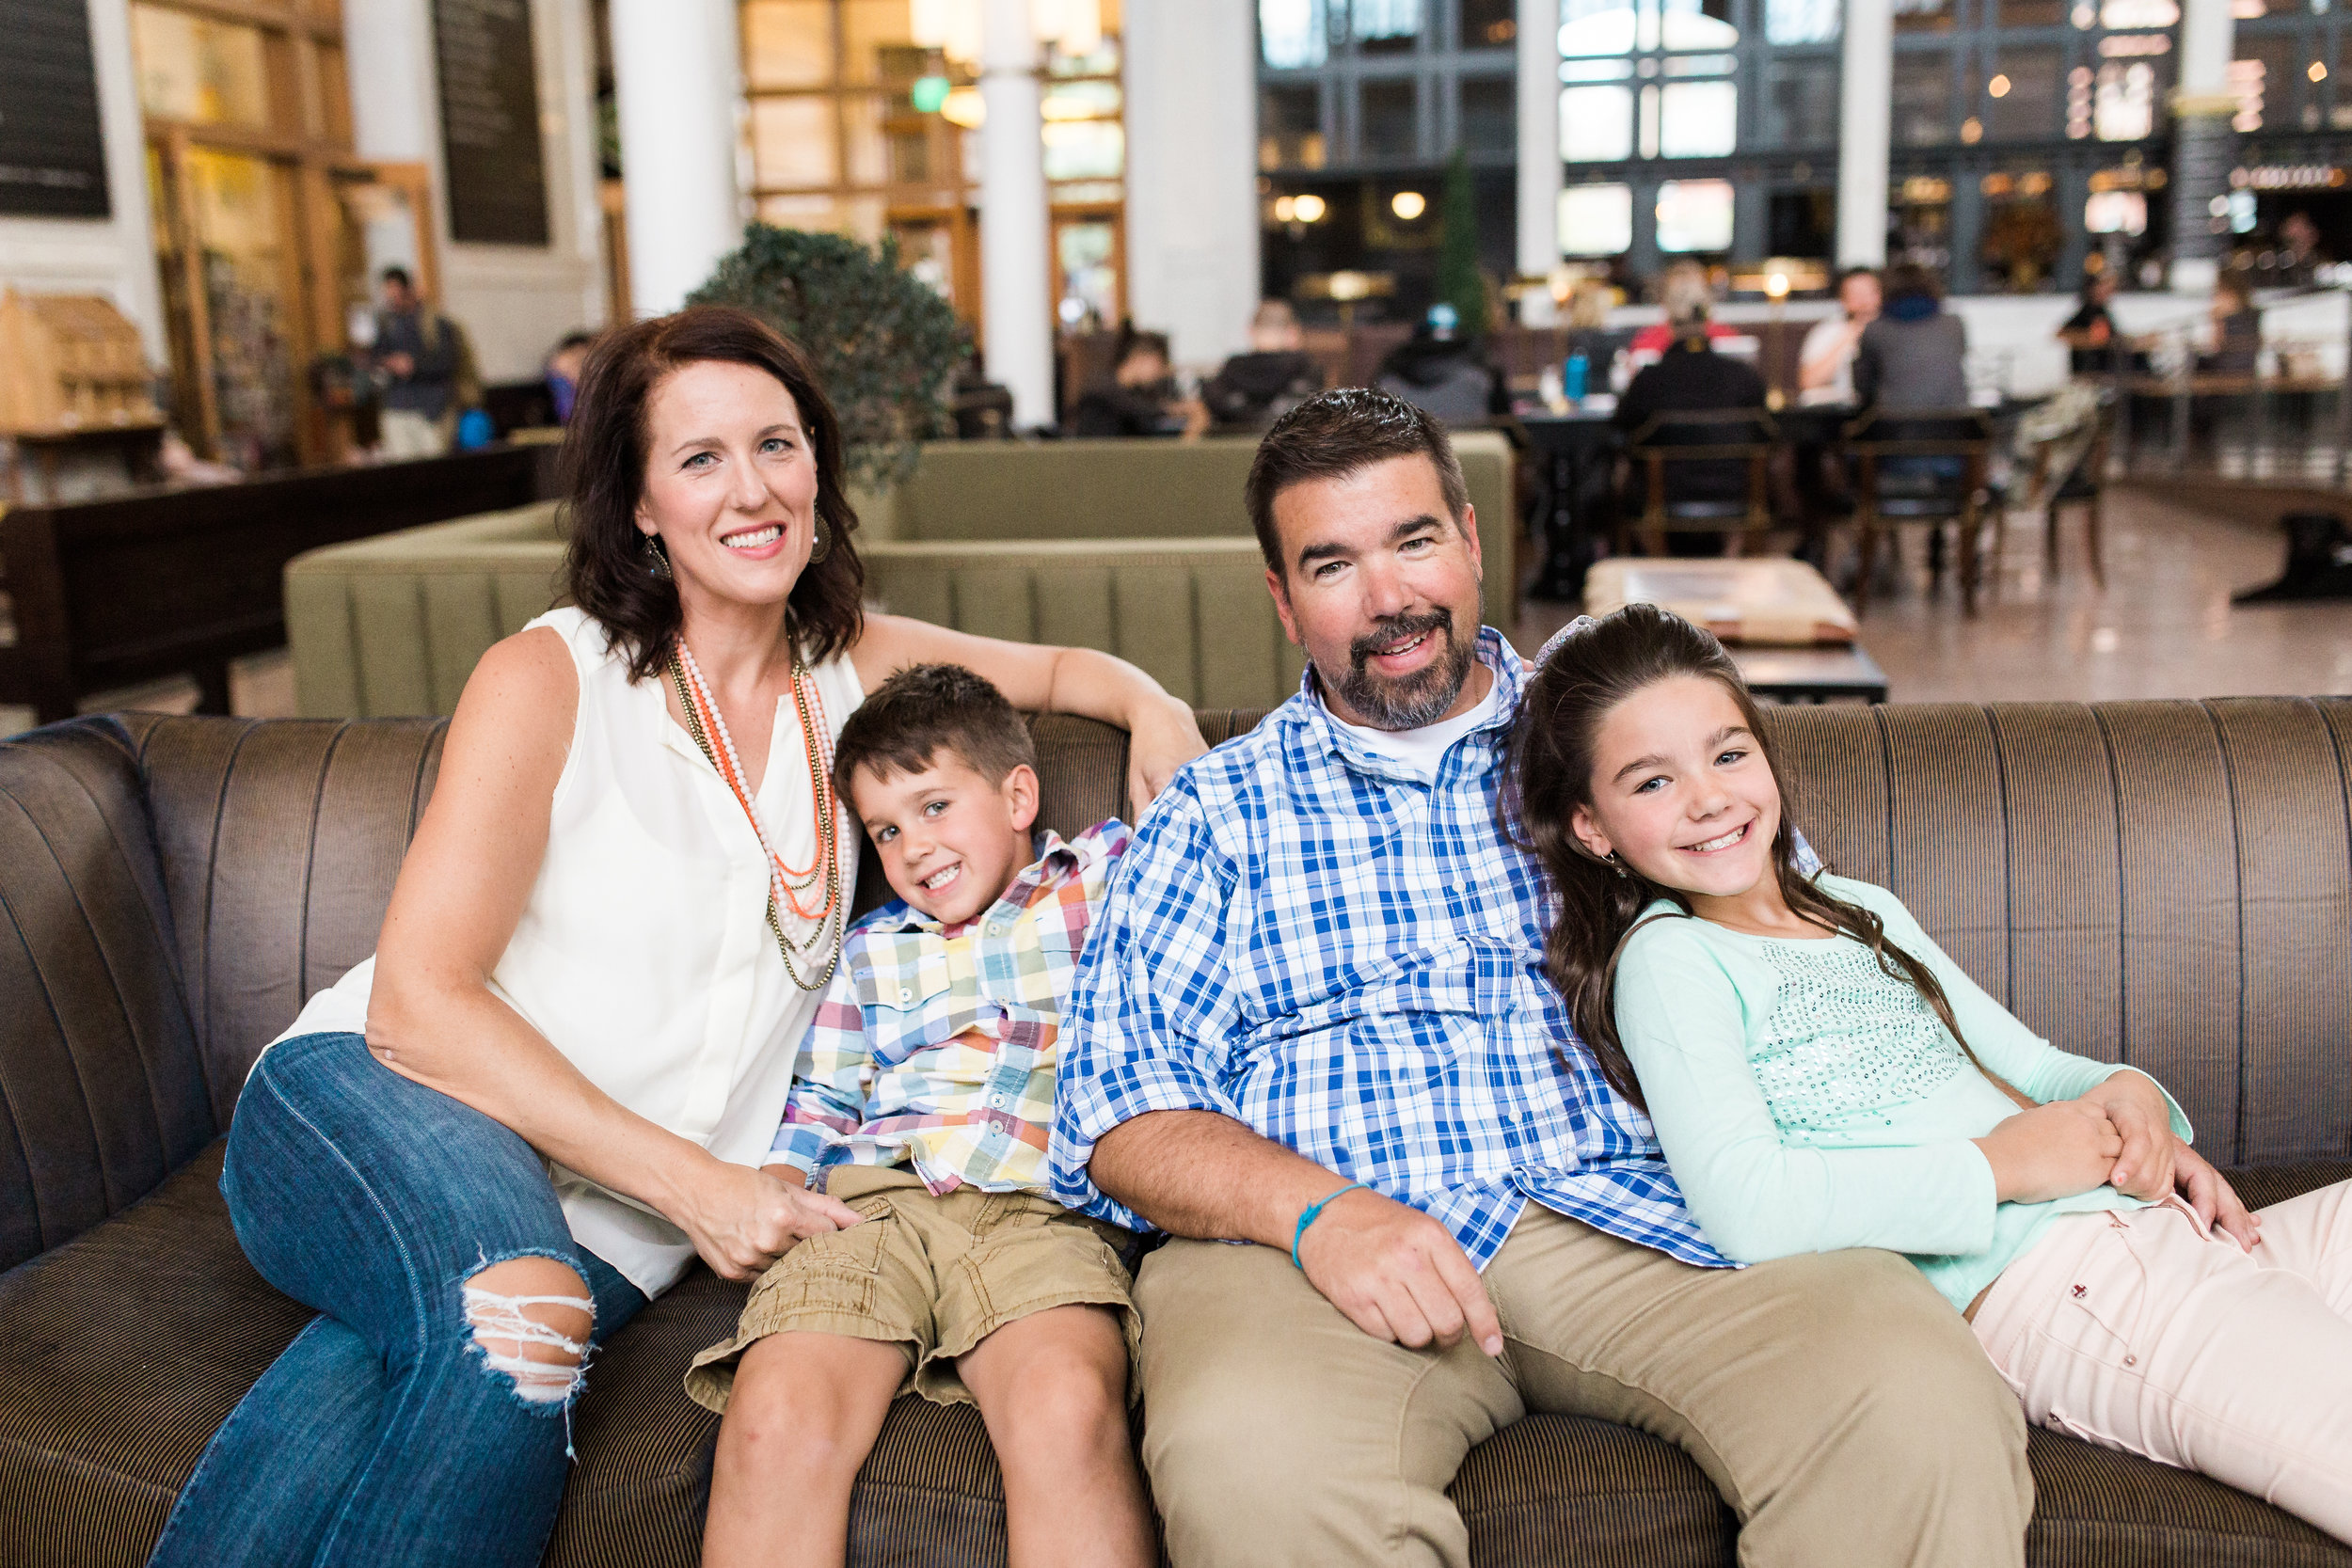 Union Station family photo by Lily Jean Photography